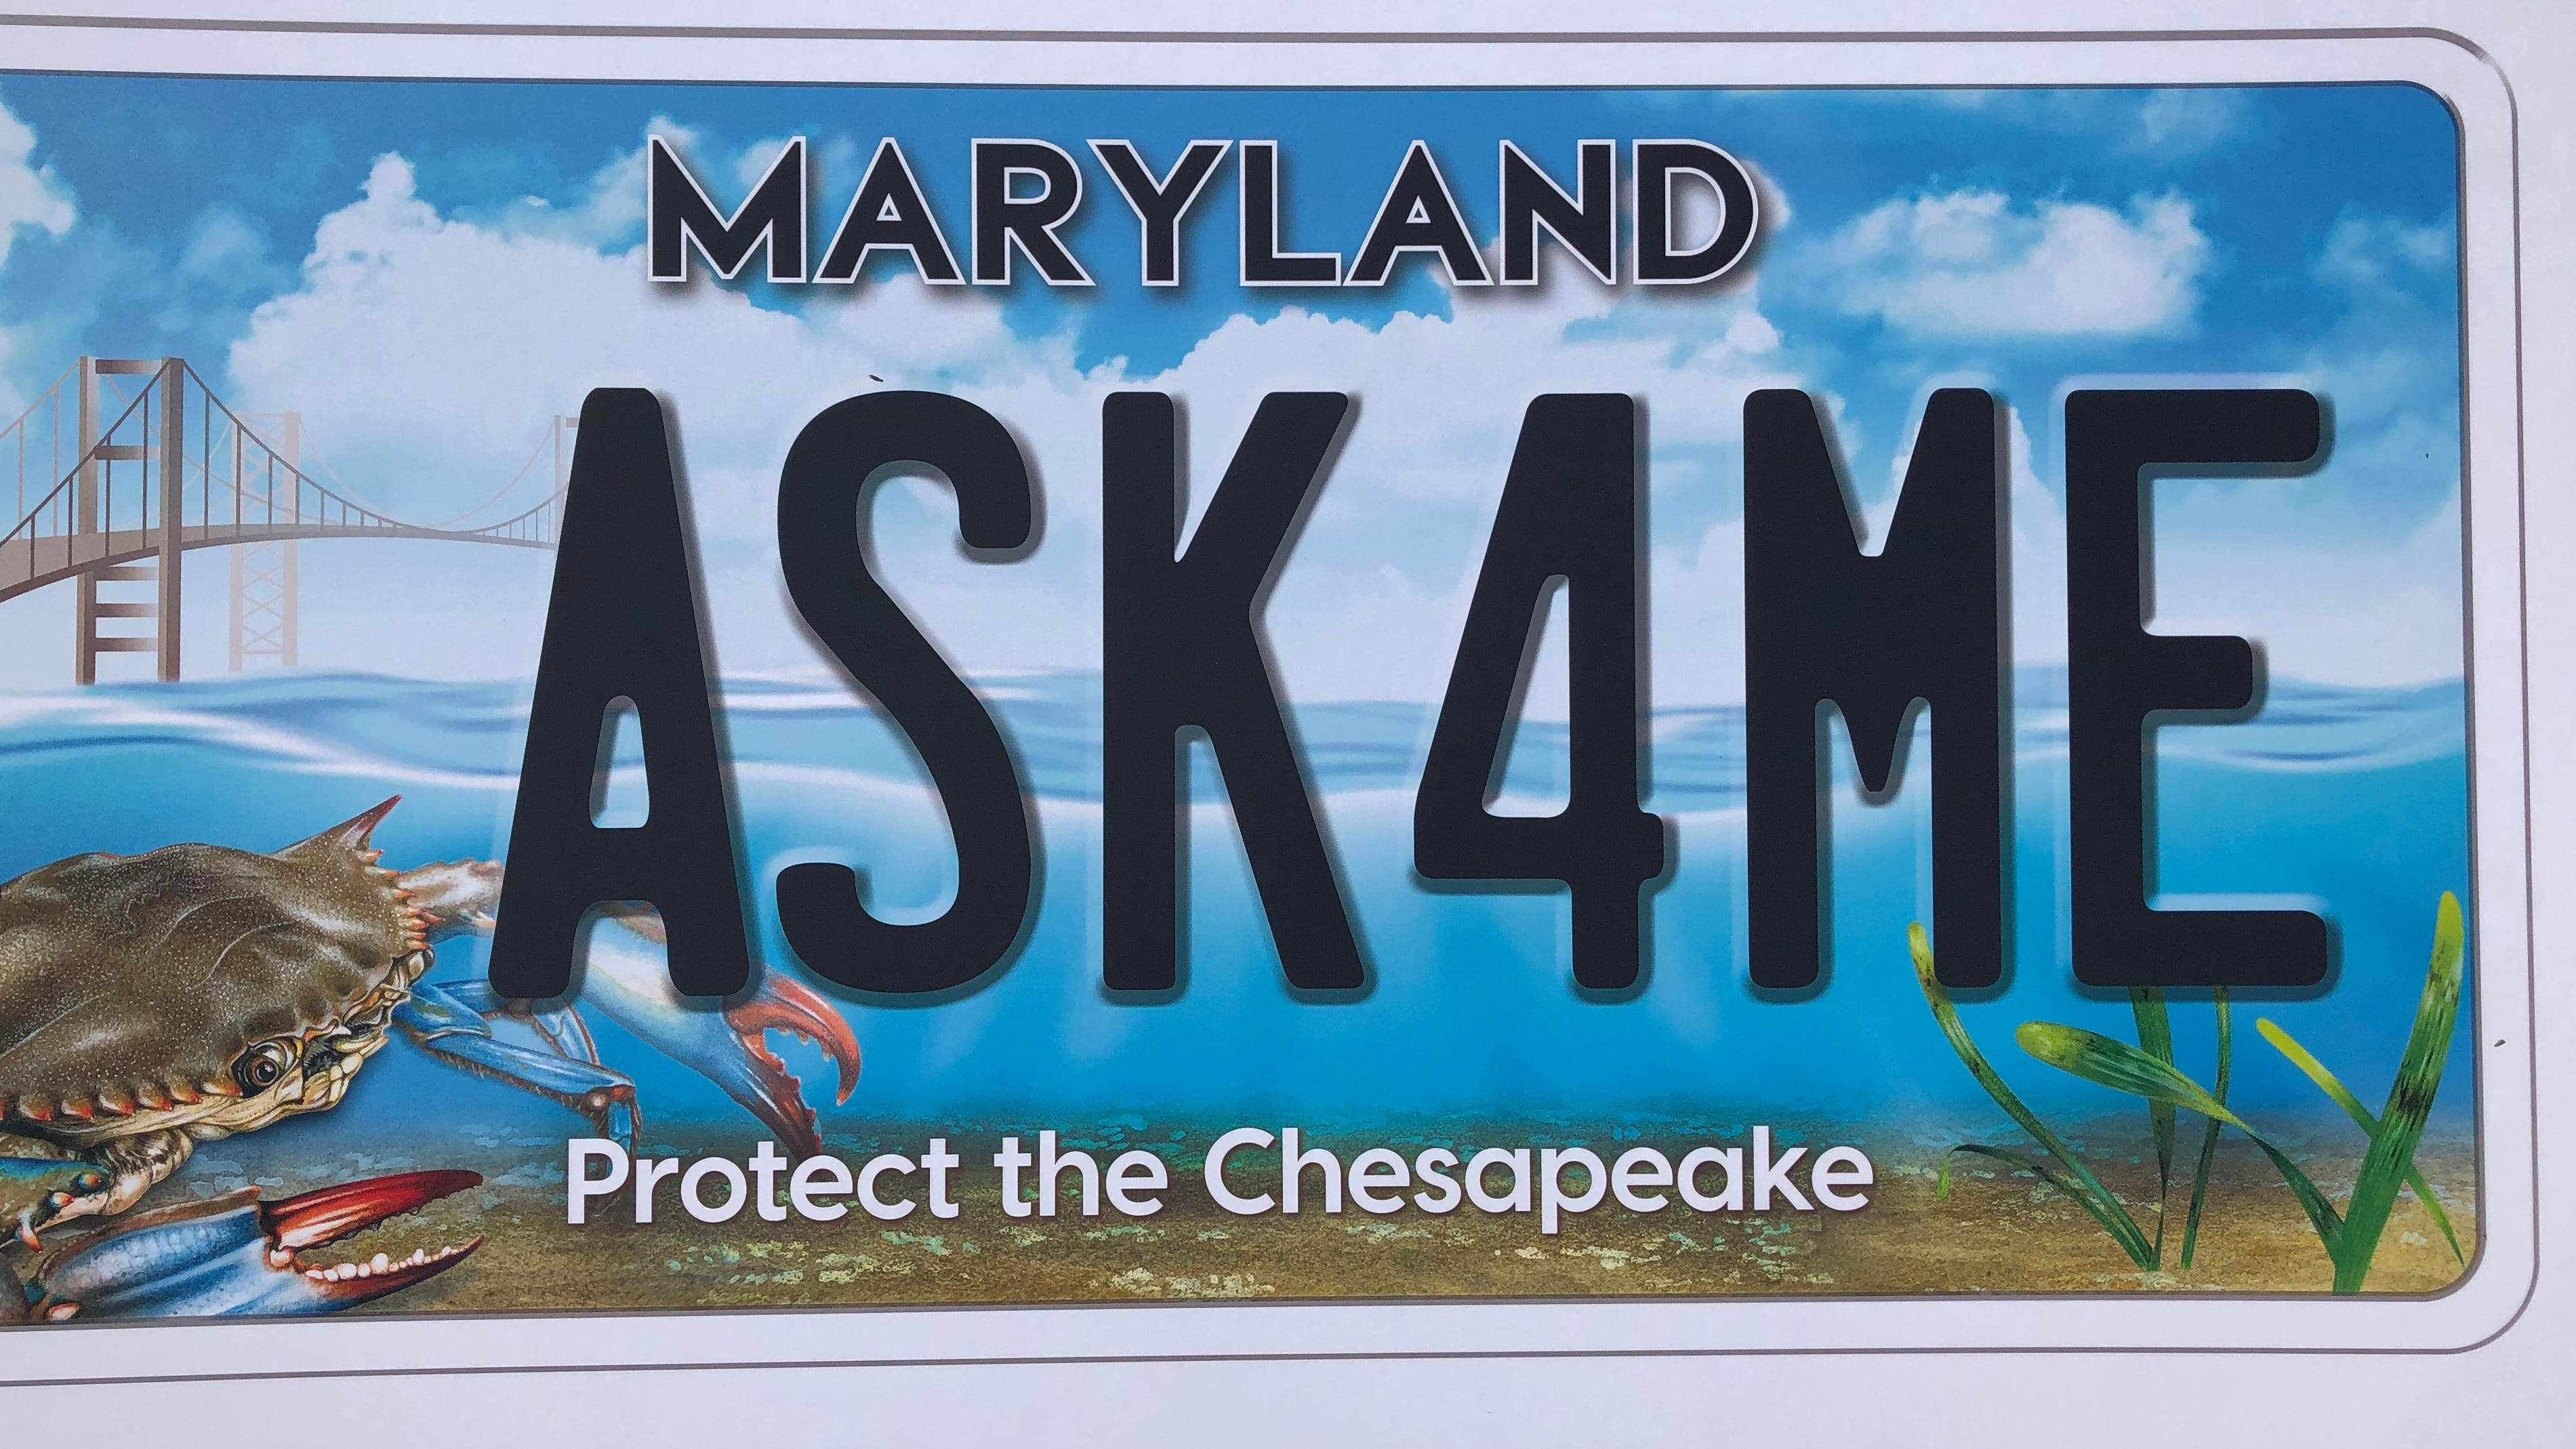 The new Chesapeake Bay license plate will be available for purchase on Oct. 29.